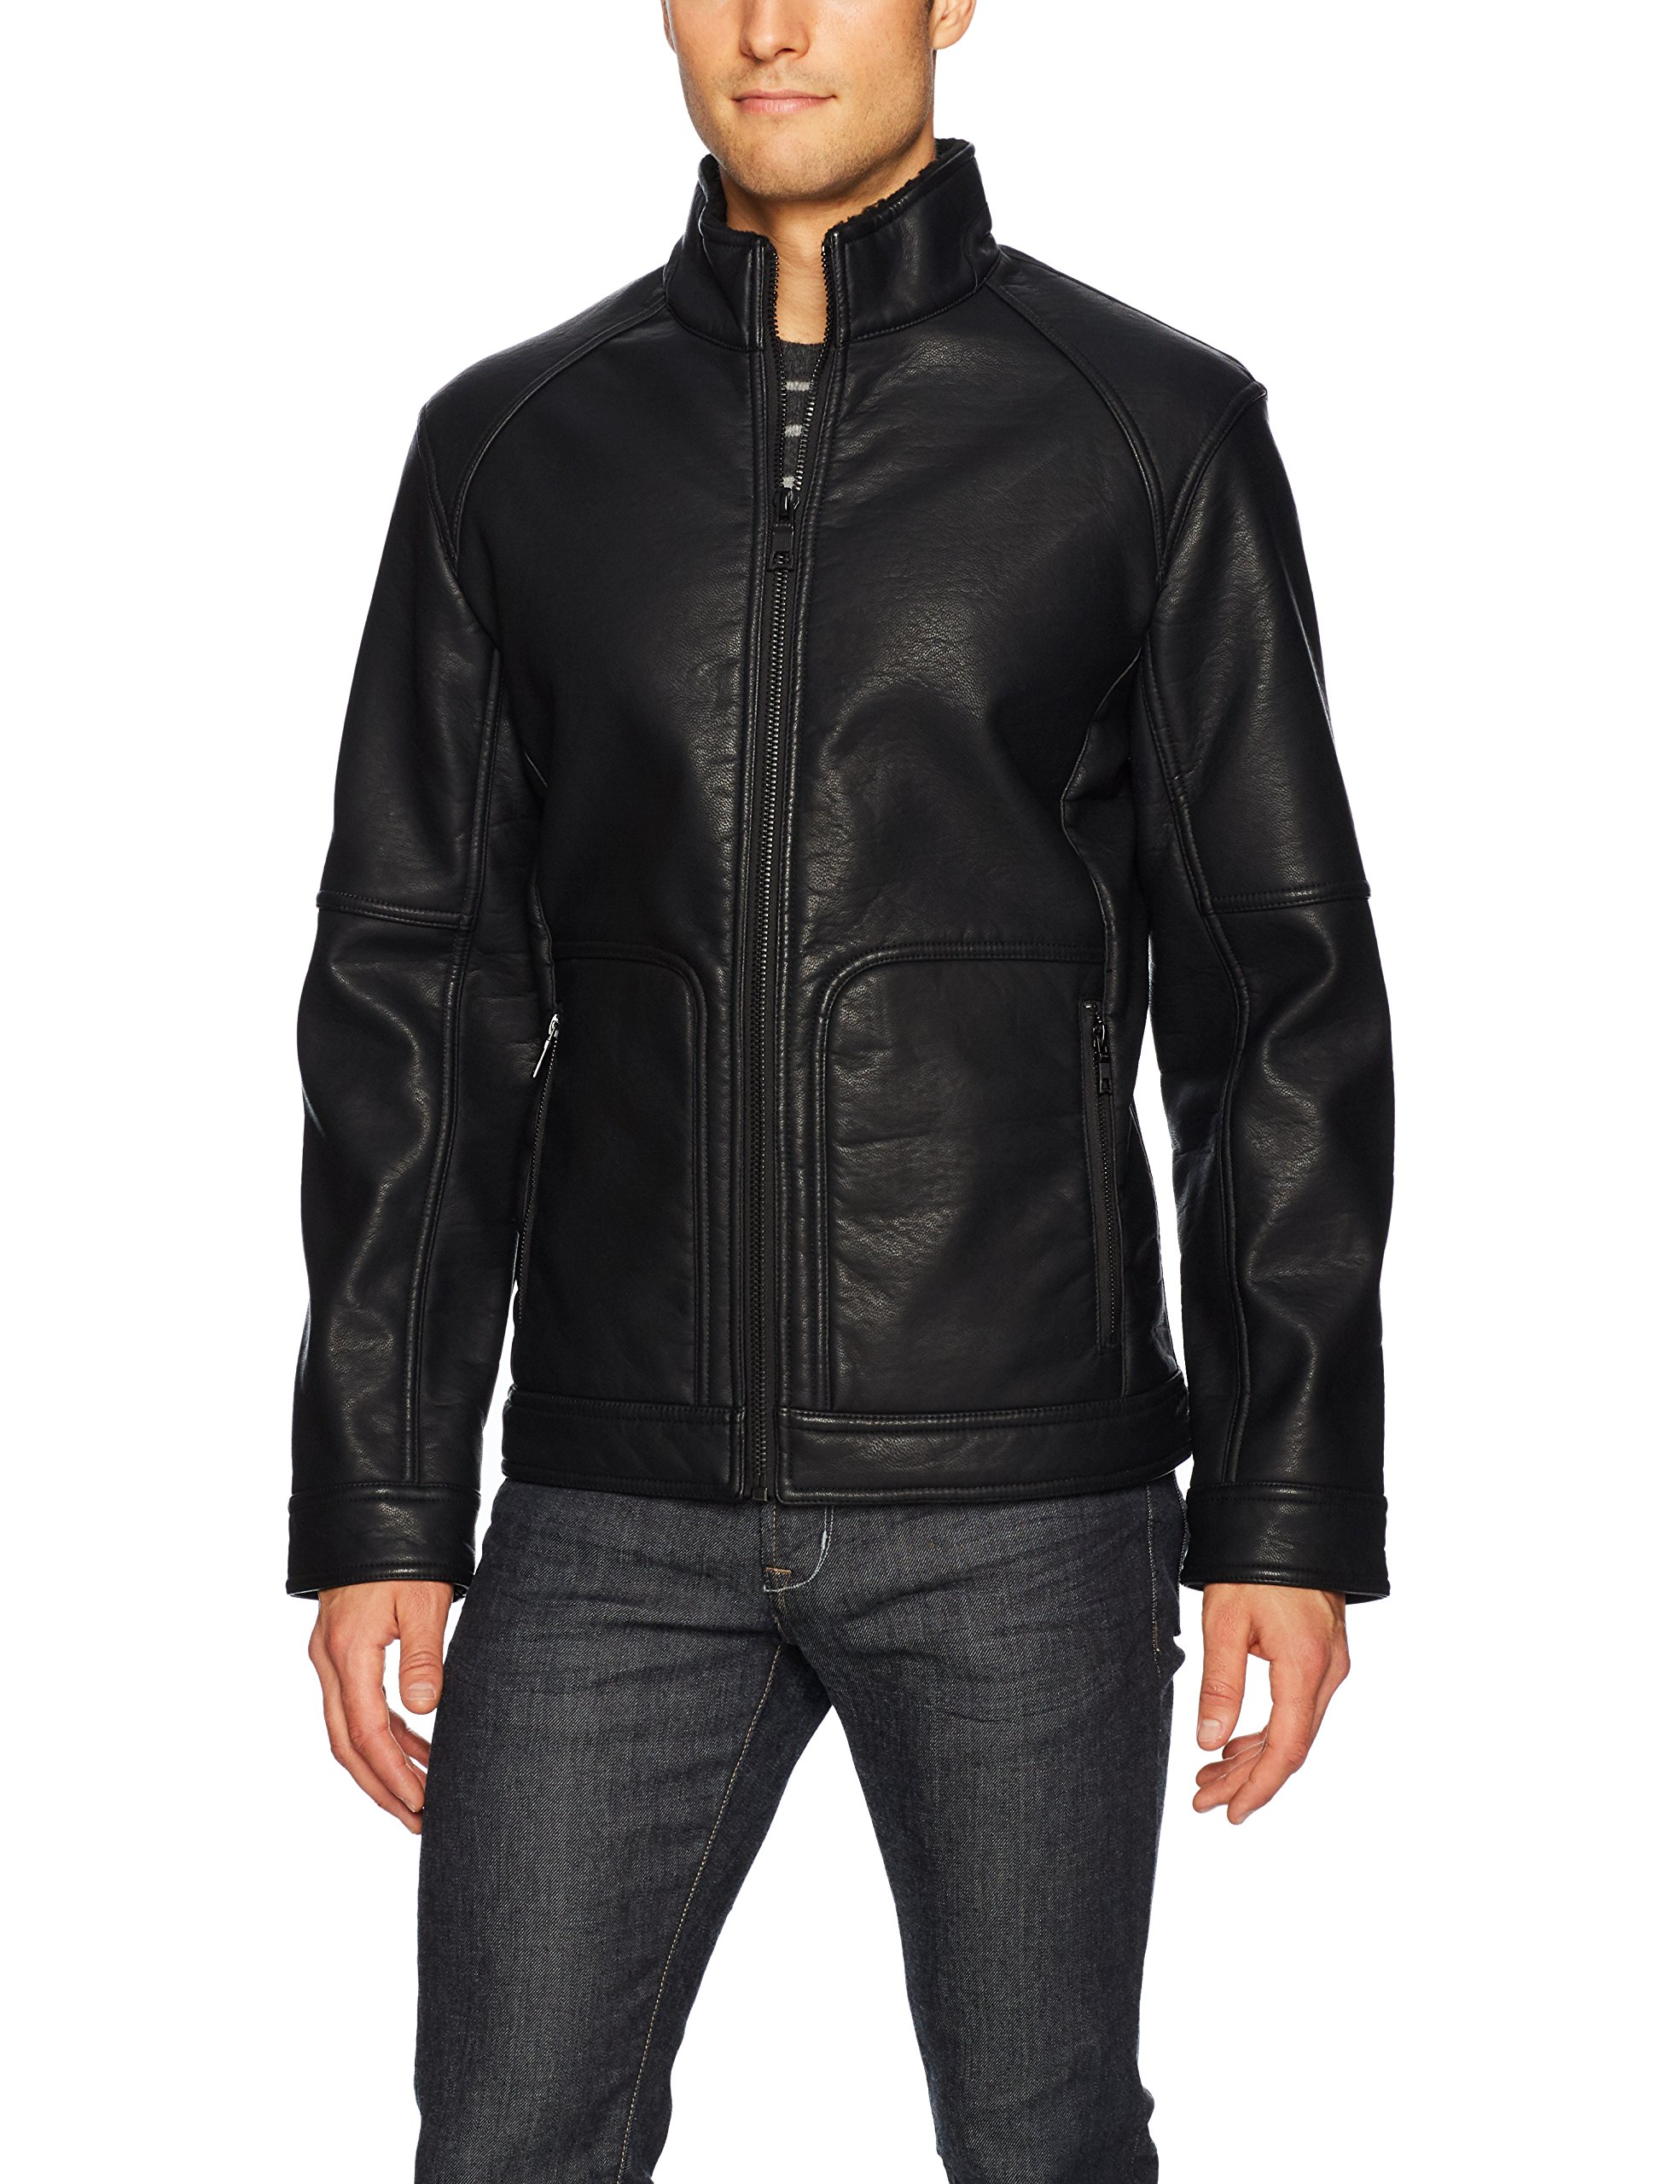 Nautica Men's Faux Leather Bonded Sherpa Jacket, Black, S by Nautica